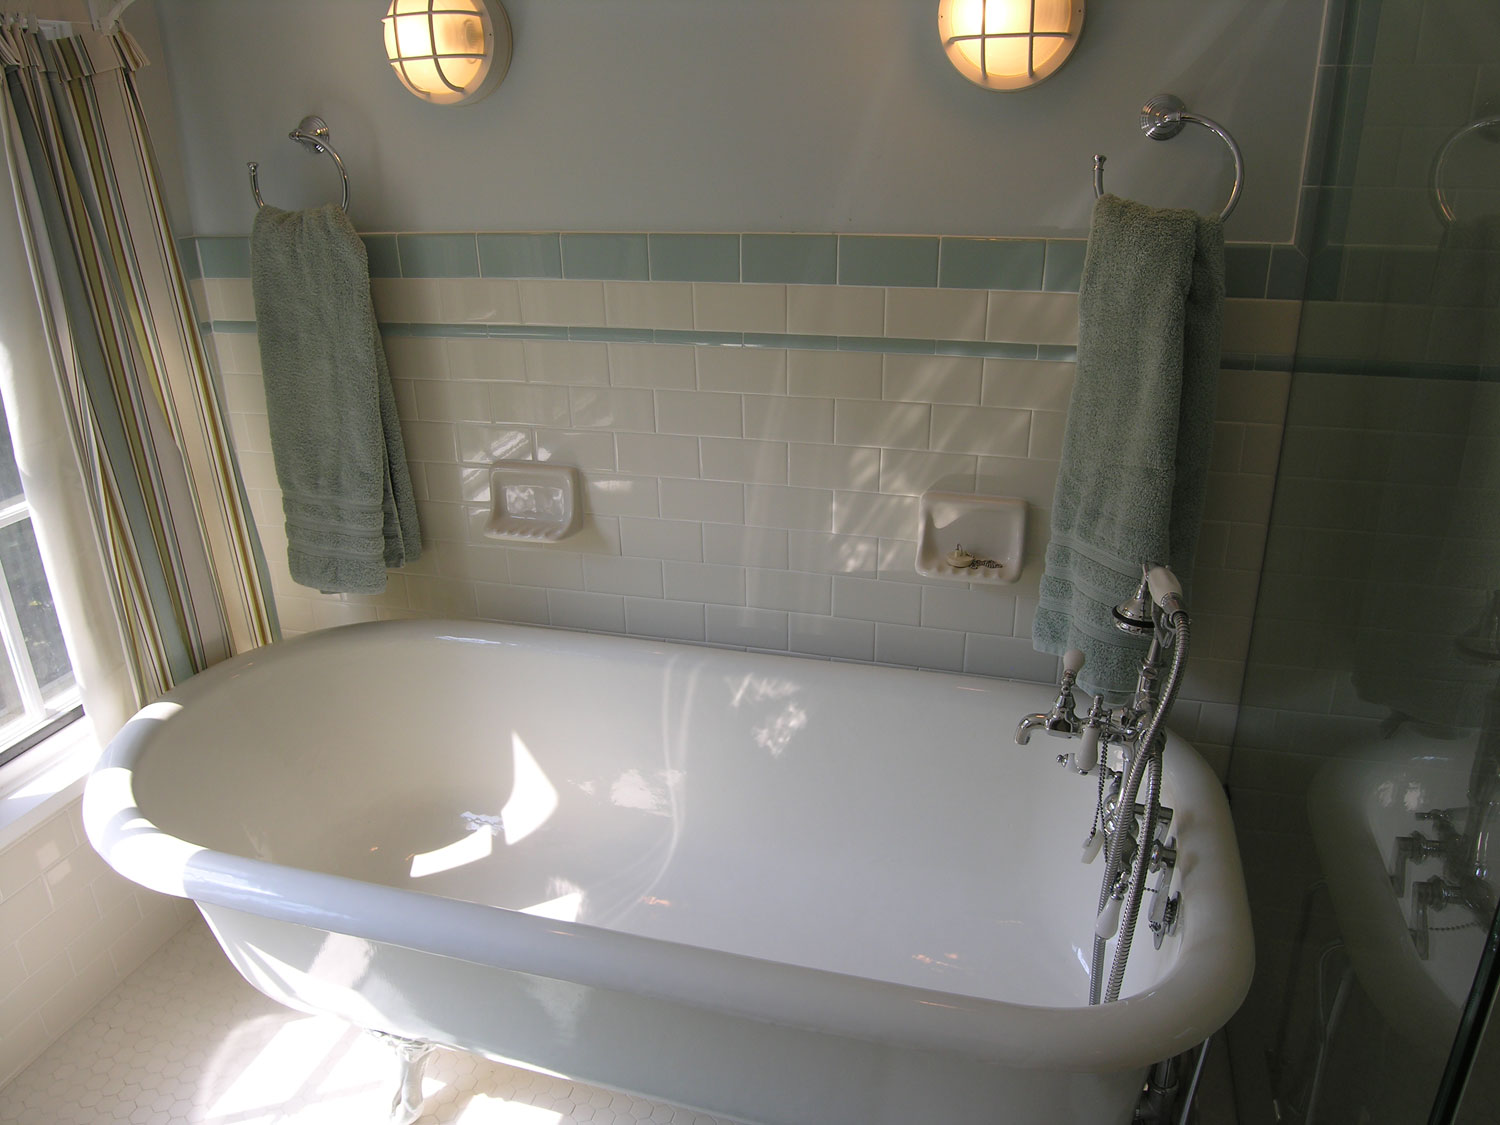 Sgs interiors historical home gets a bathroom remodel - Small bathroom remodel with tub ...